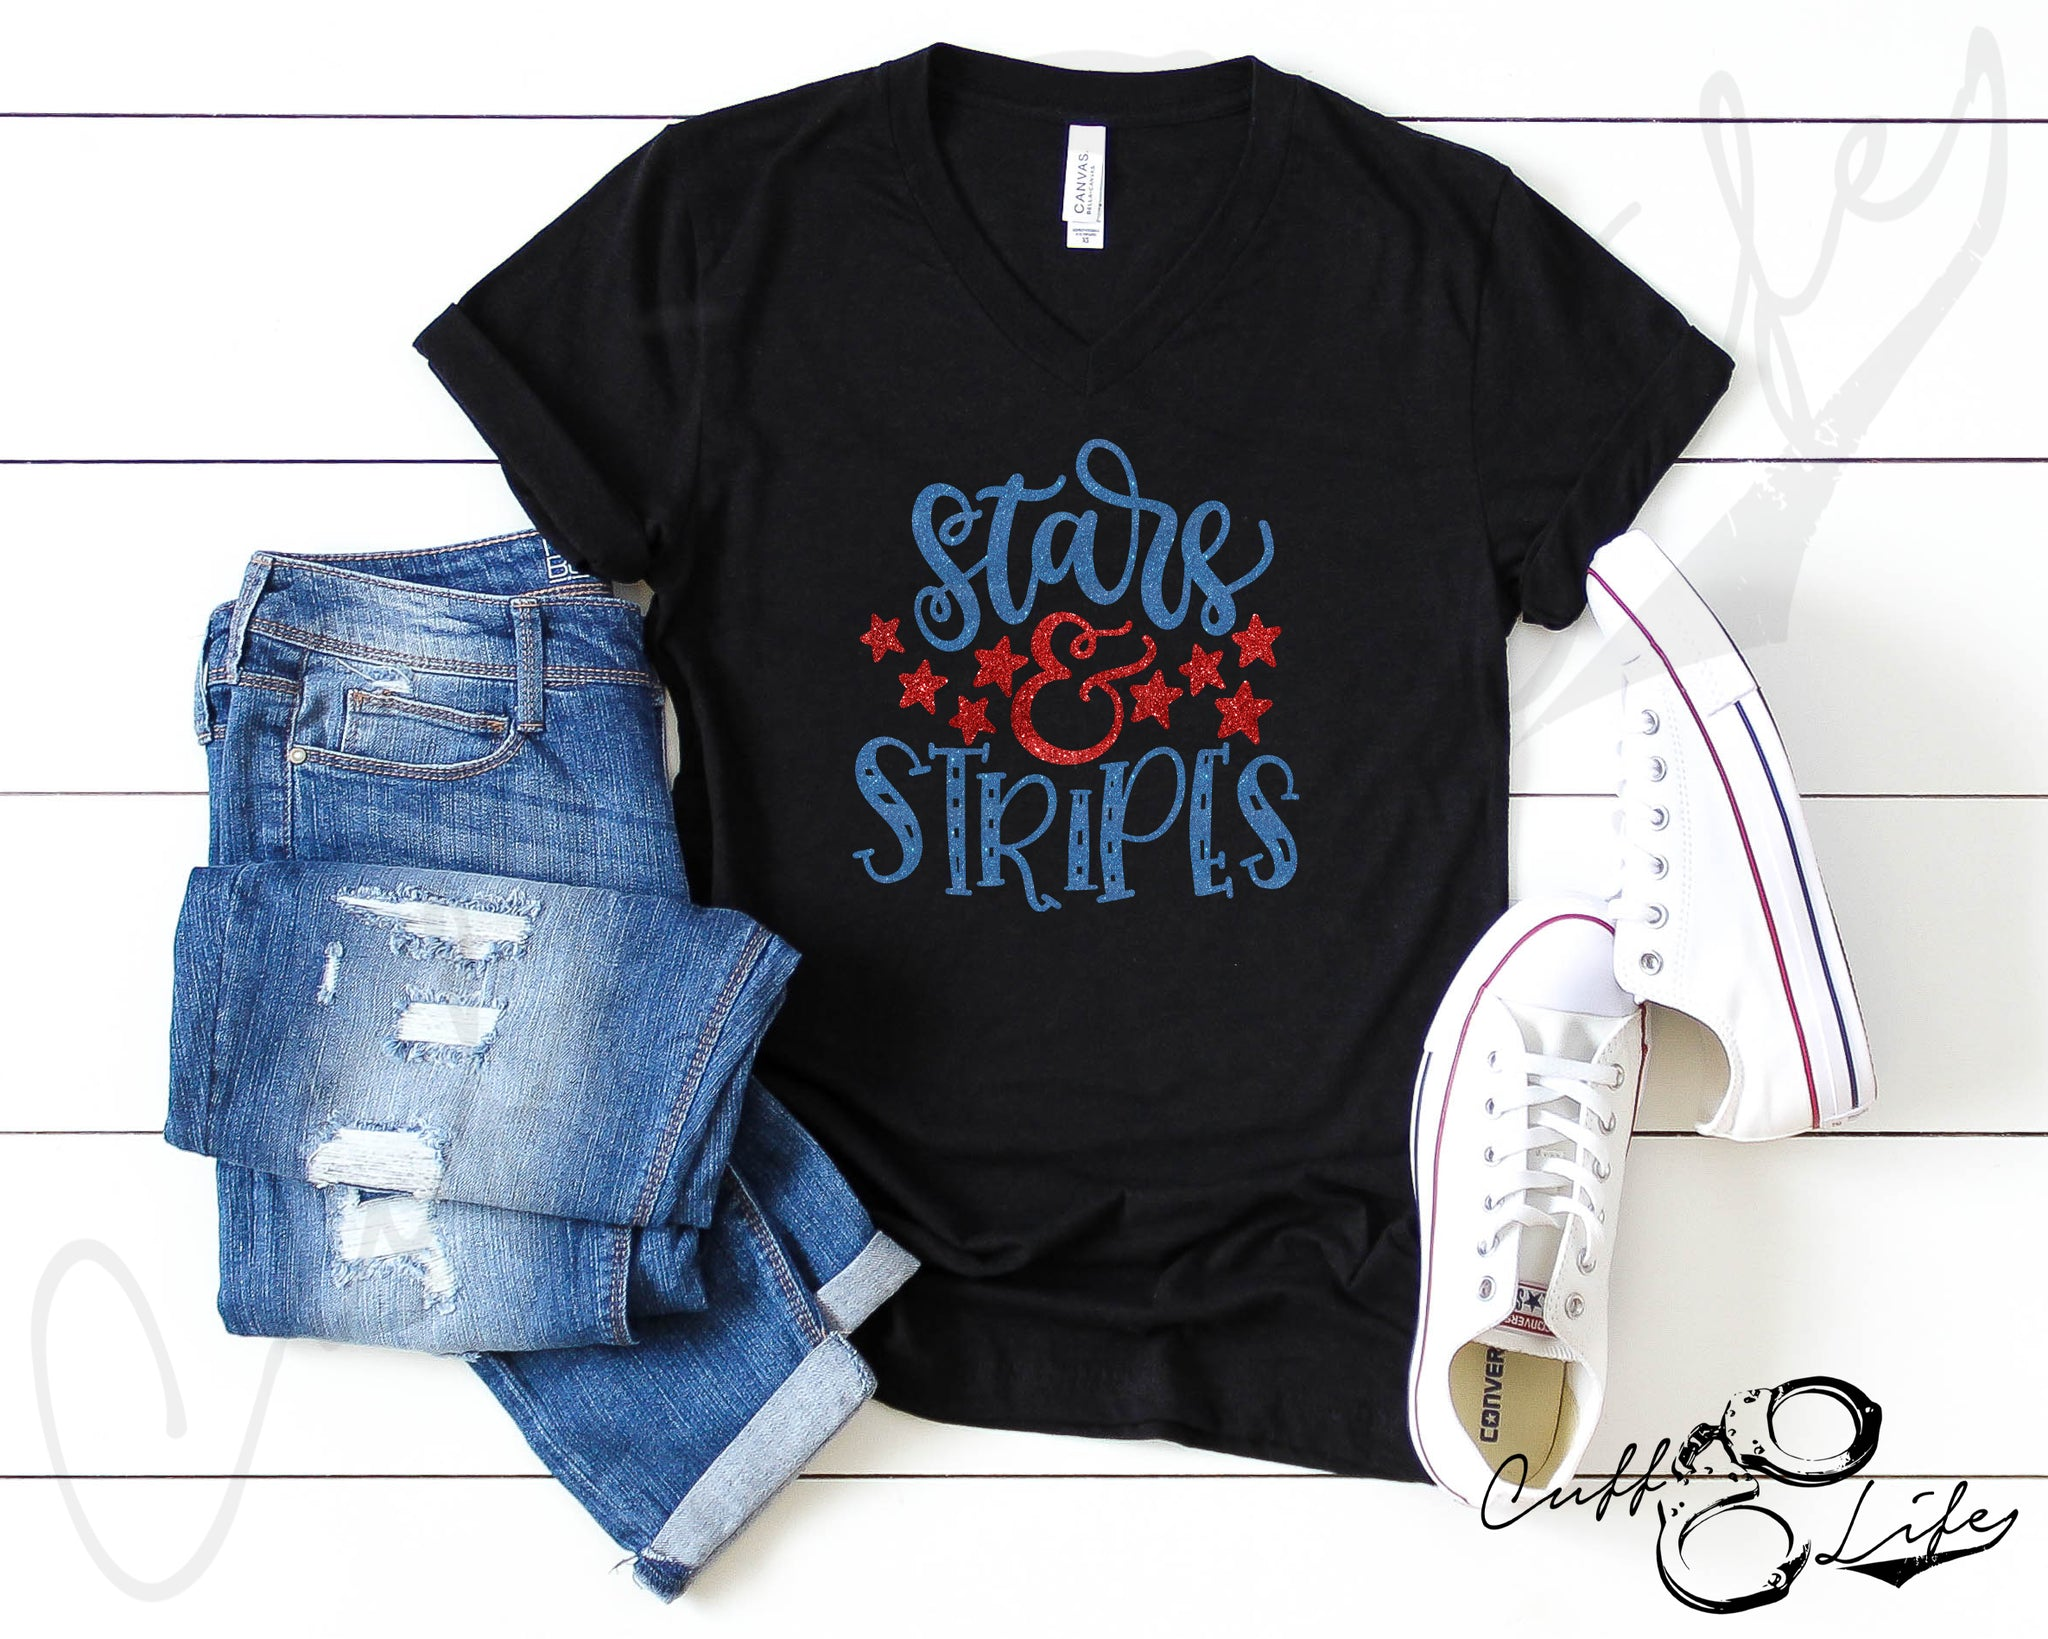 Stars & Stripes - Boyfriend Fit V-Neck Tee